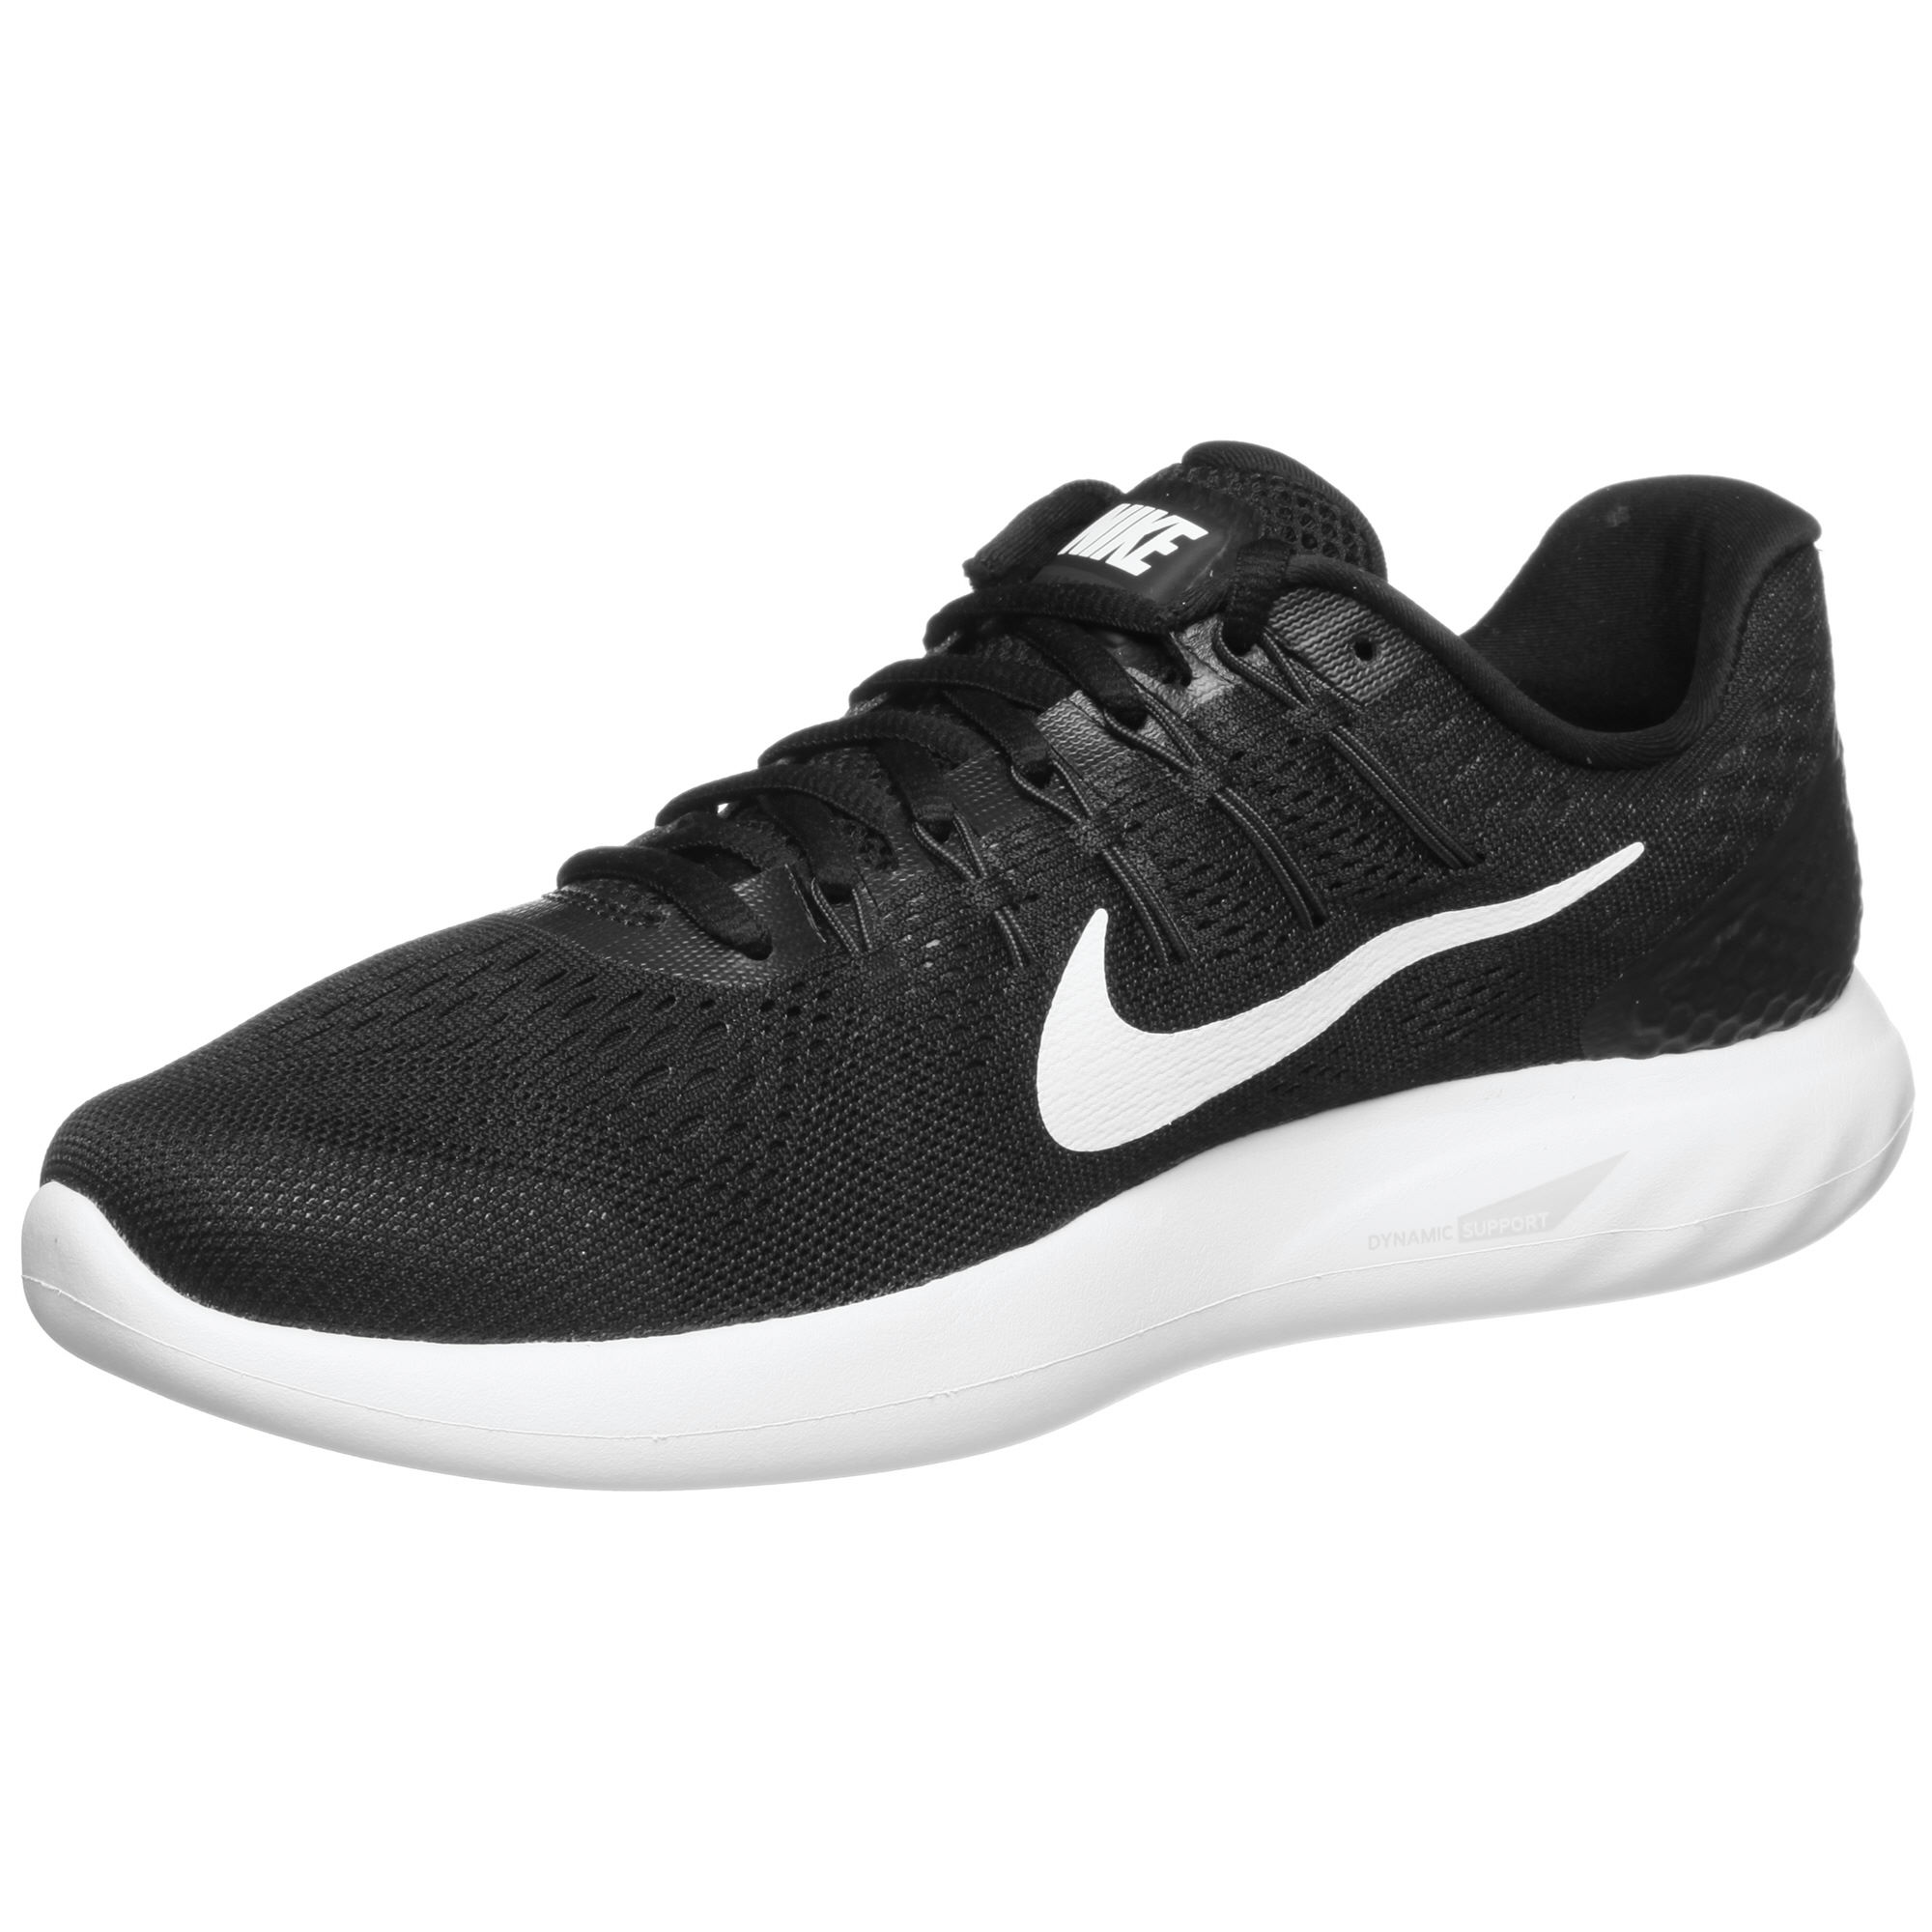 new products 73402 5983e Wiggle Cycle To Work | Nike Lunarglide 8 Shoes | Running Shoes